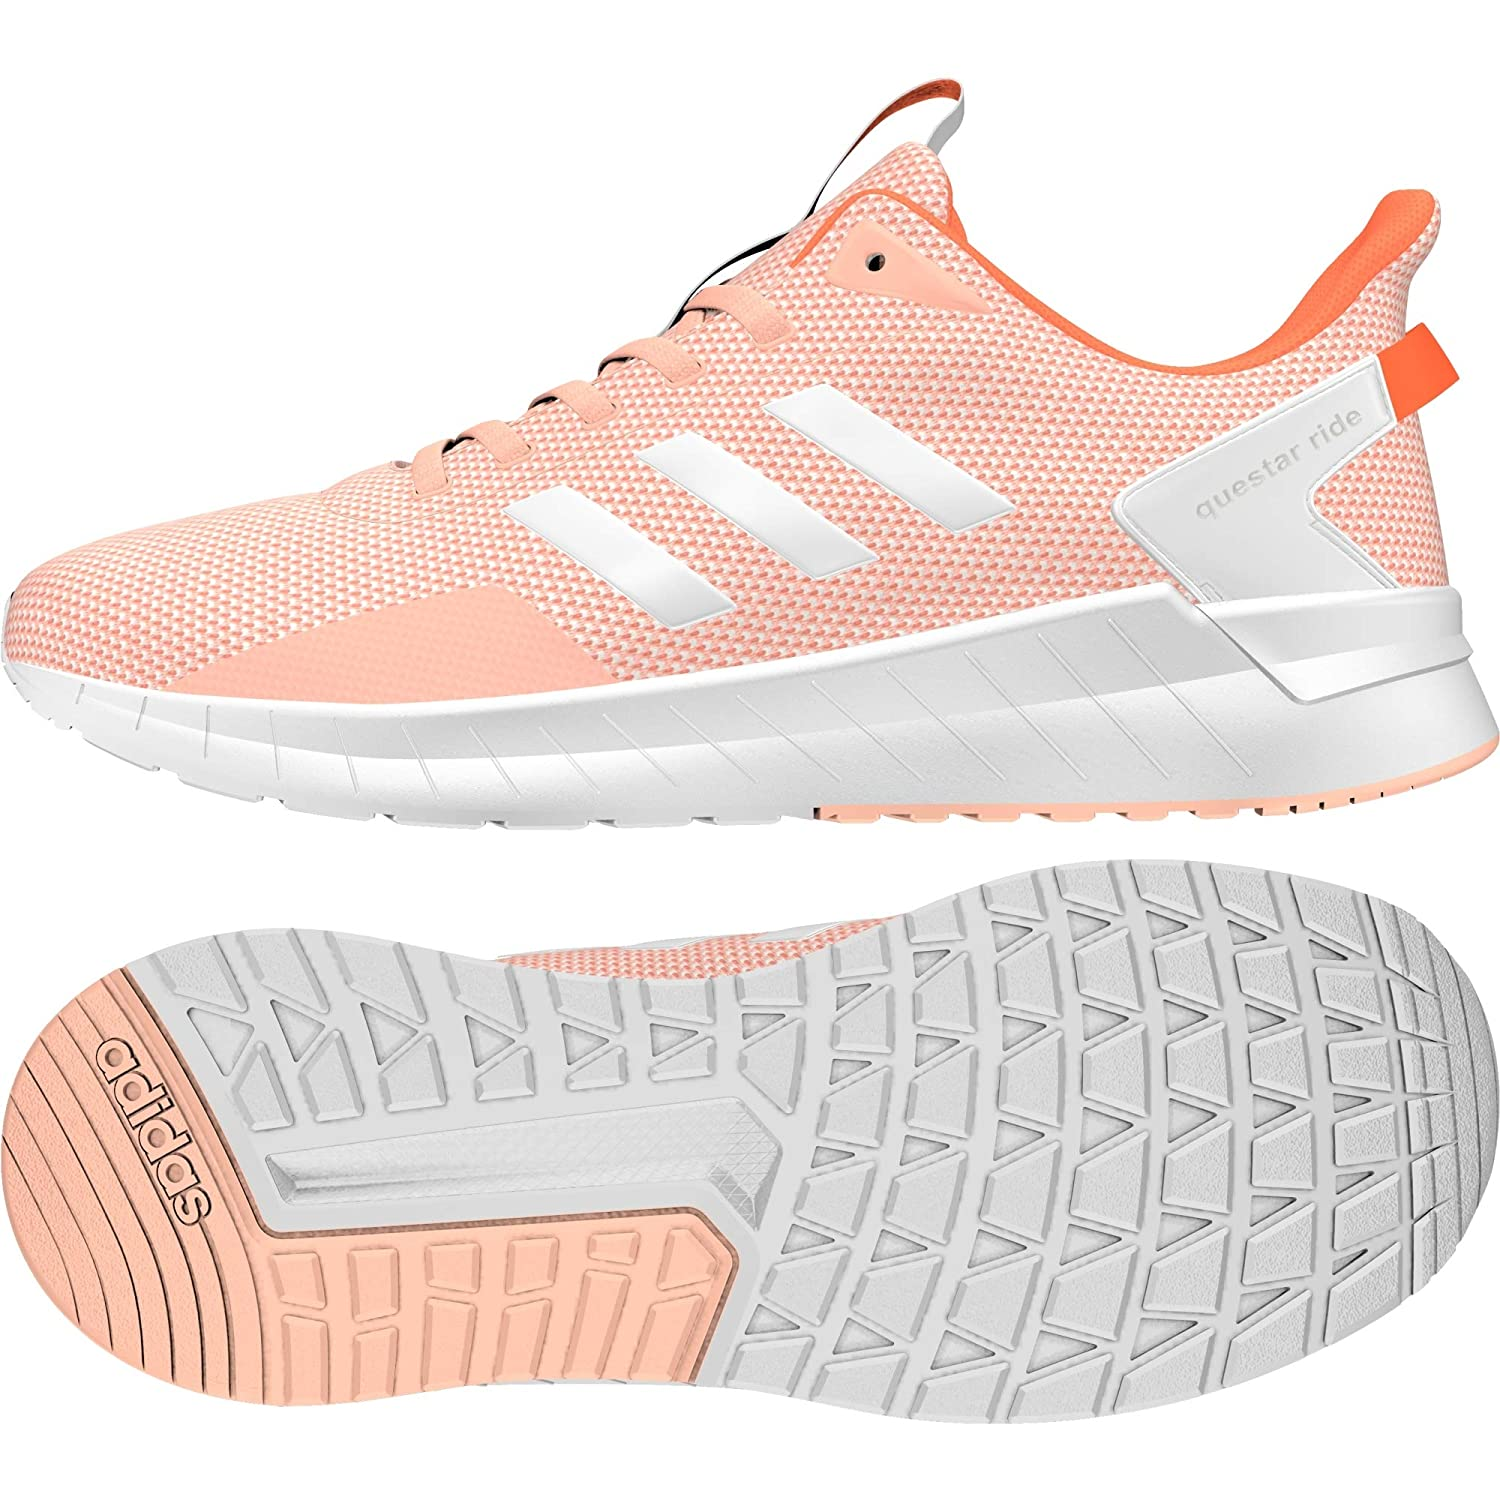 adidas Women's Questar Ride, HAZCORFTWWHTHIREOR, 7 US